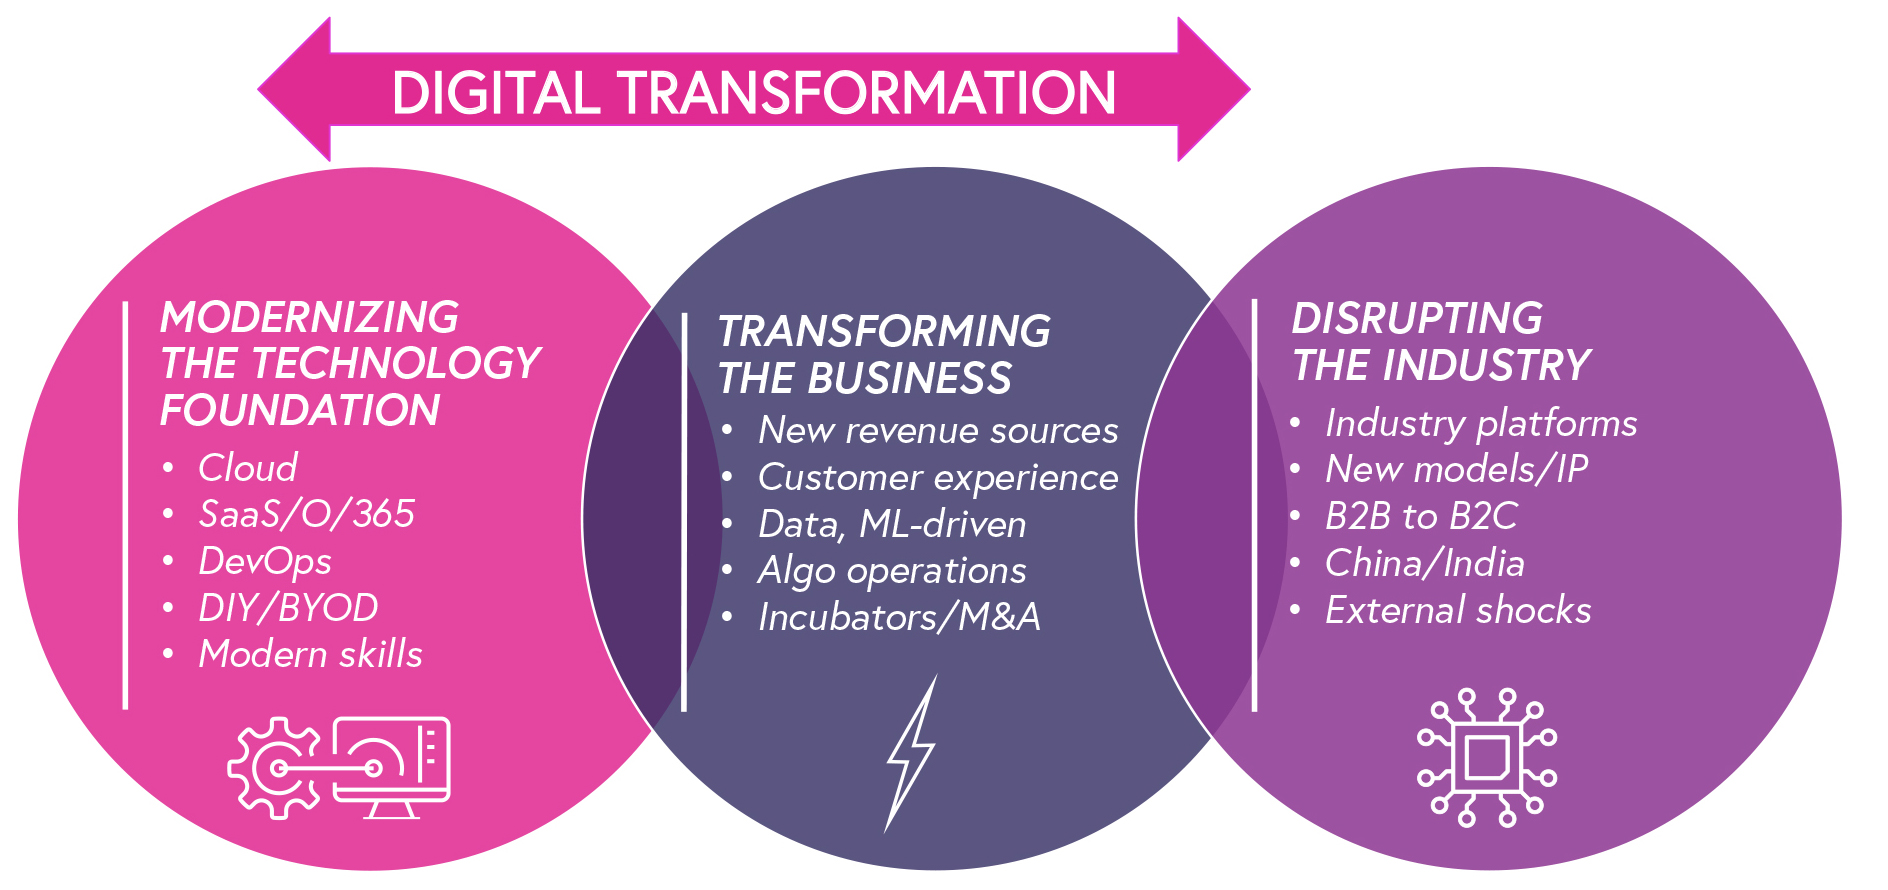 diagram of digital transformation within tech, industry and business